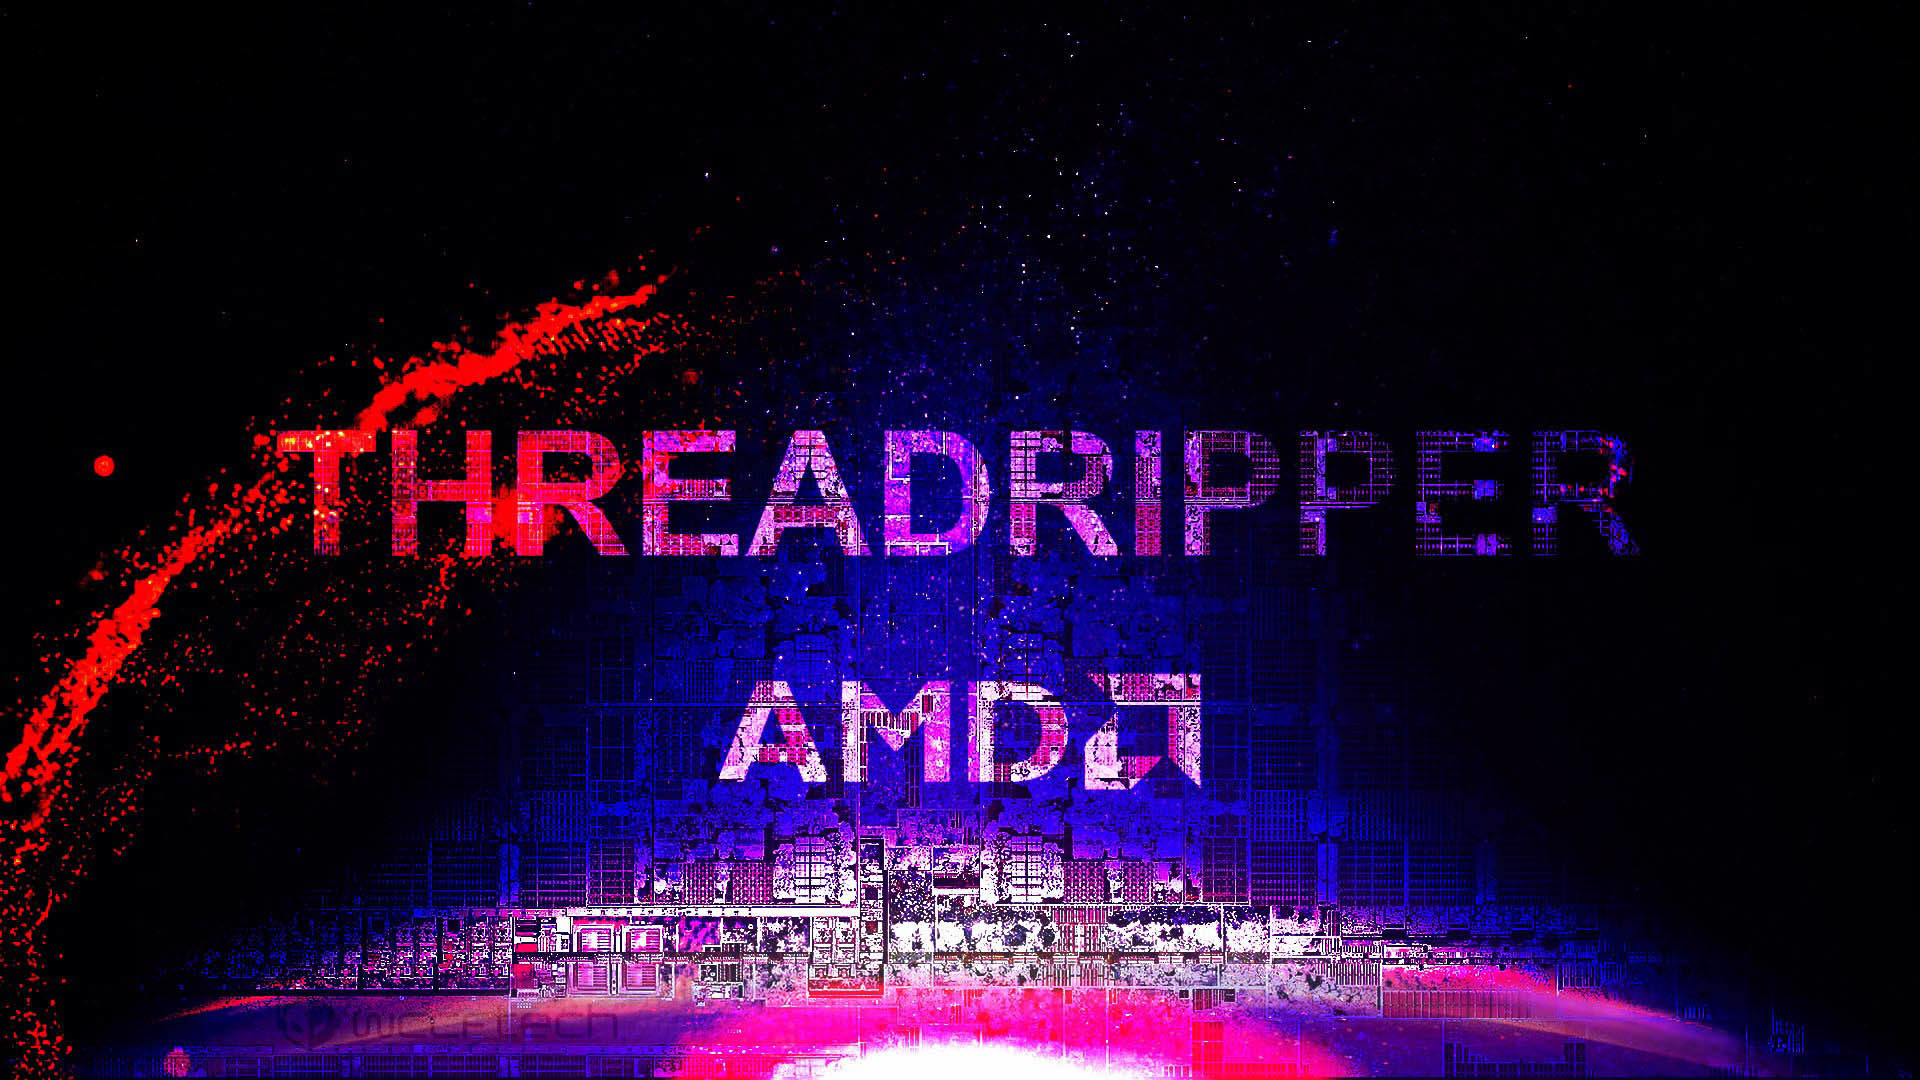 AMD Threadripper Whitehaven wccftech watermarked image 1920x1080